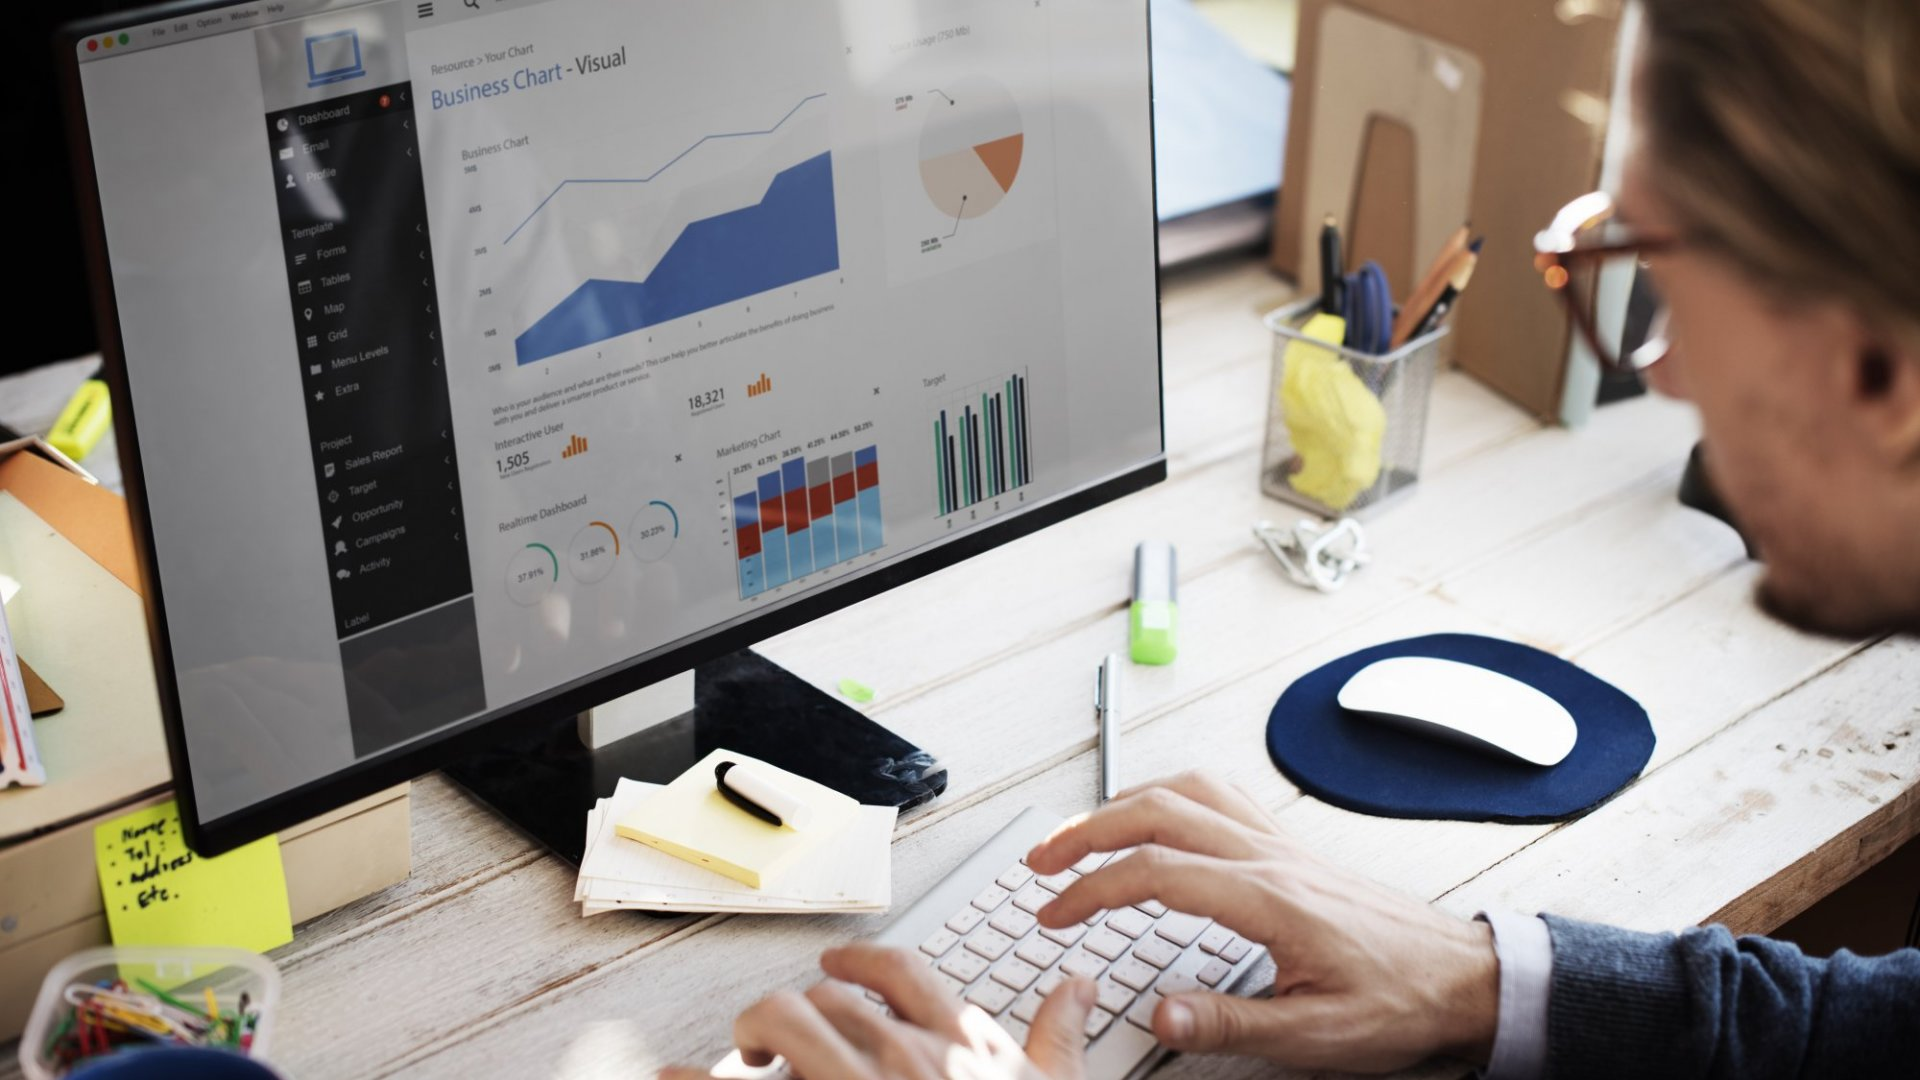 4 Ways To Build A Data Infrastructure To Inform Business Decisions